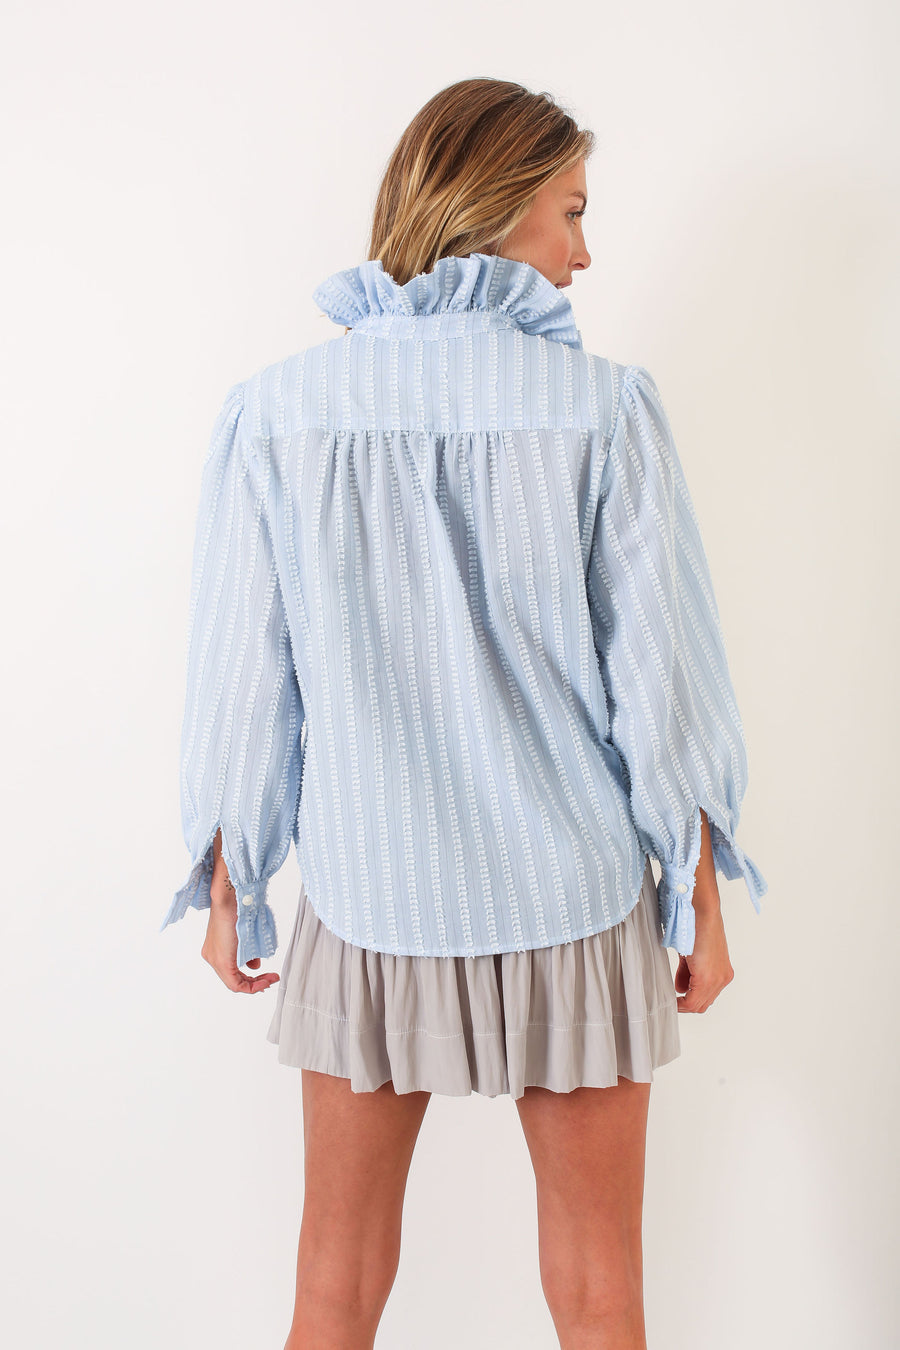 PHOEBE TOP BLUE FRINGE